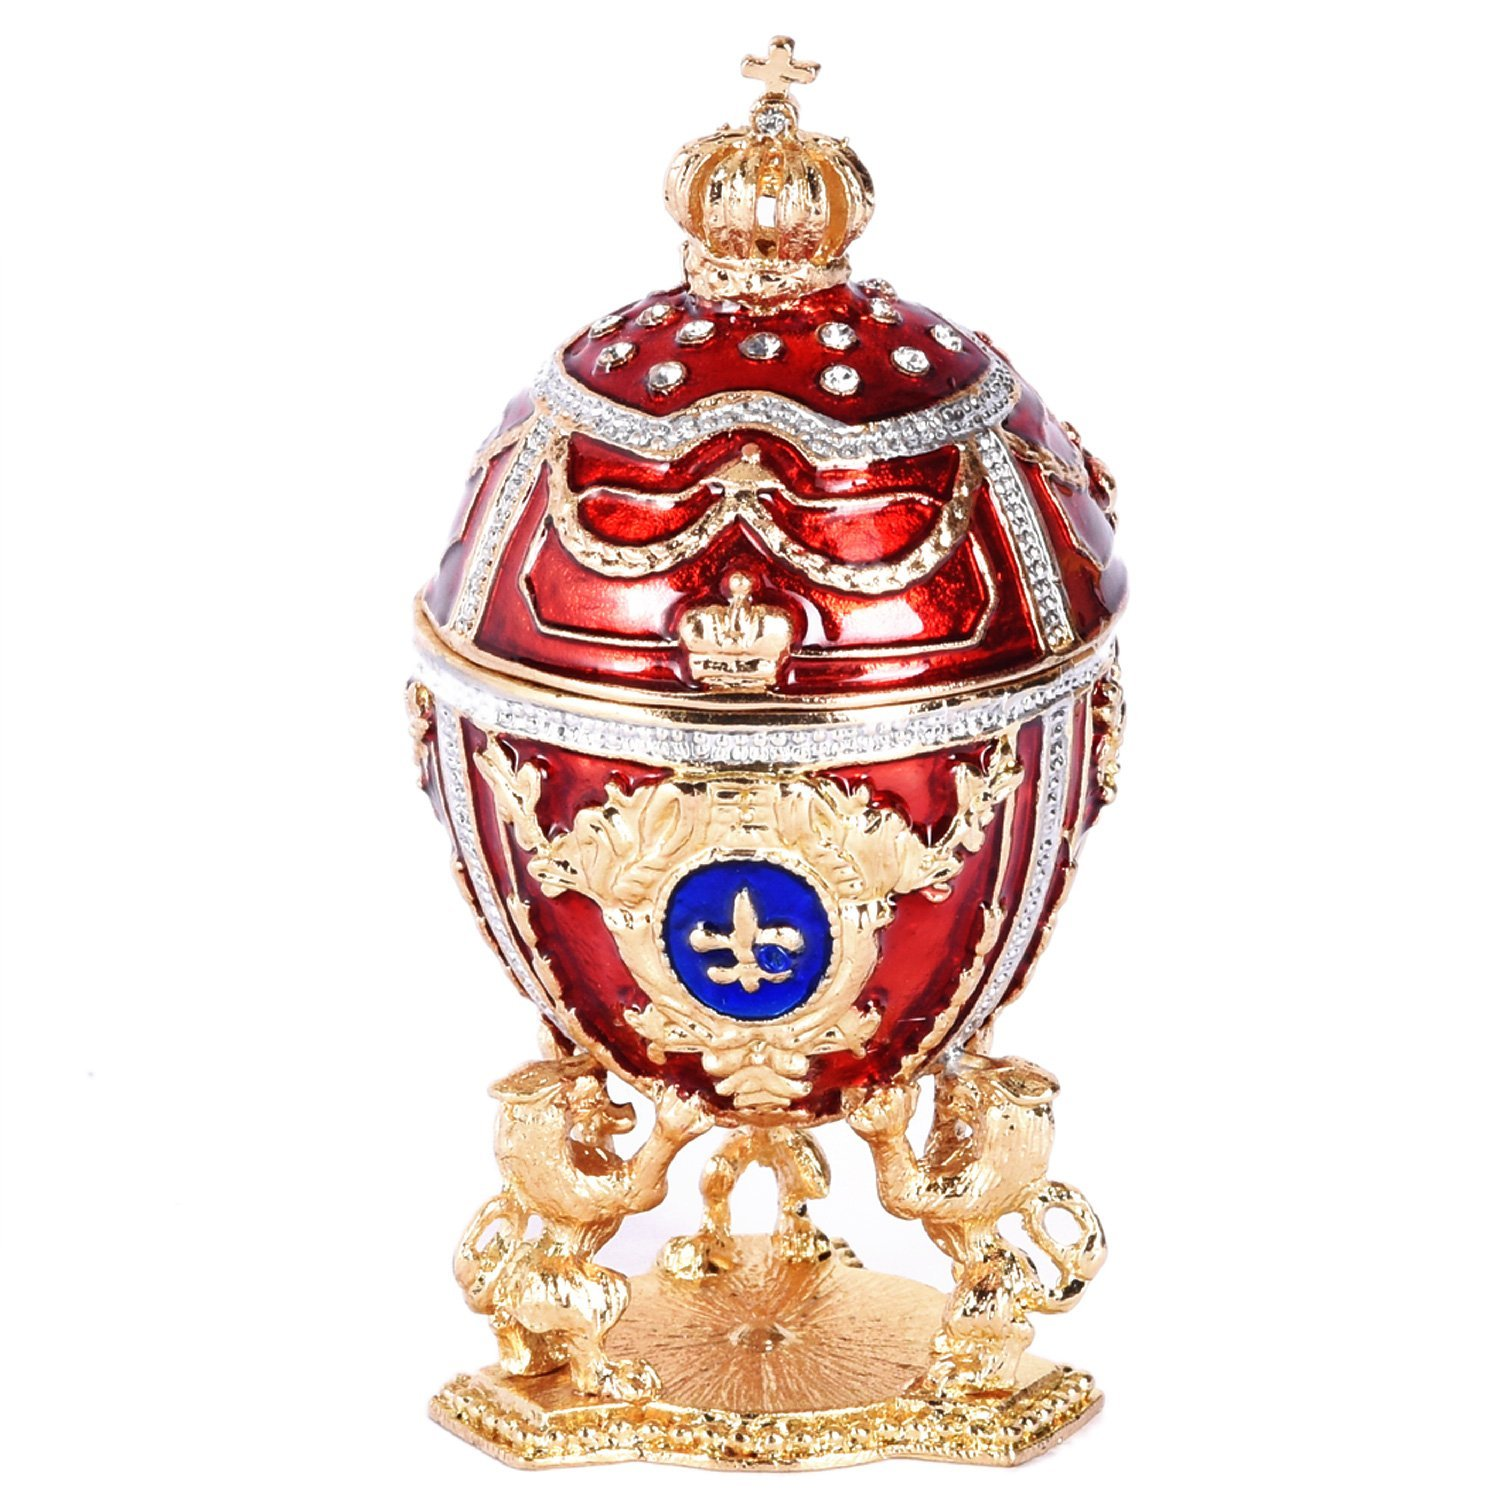 Red Russian Style Egg Trinket Box with Lions and Crown, 2.5